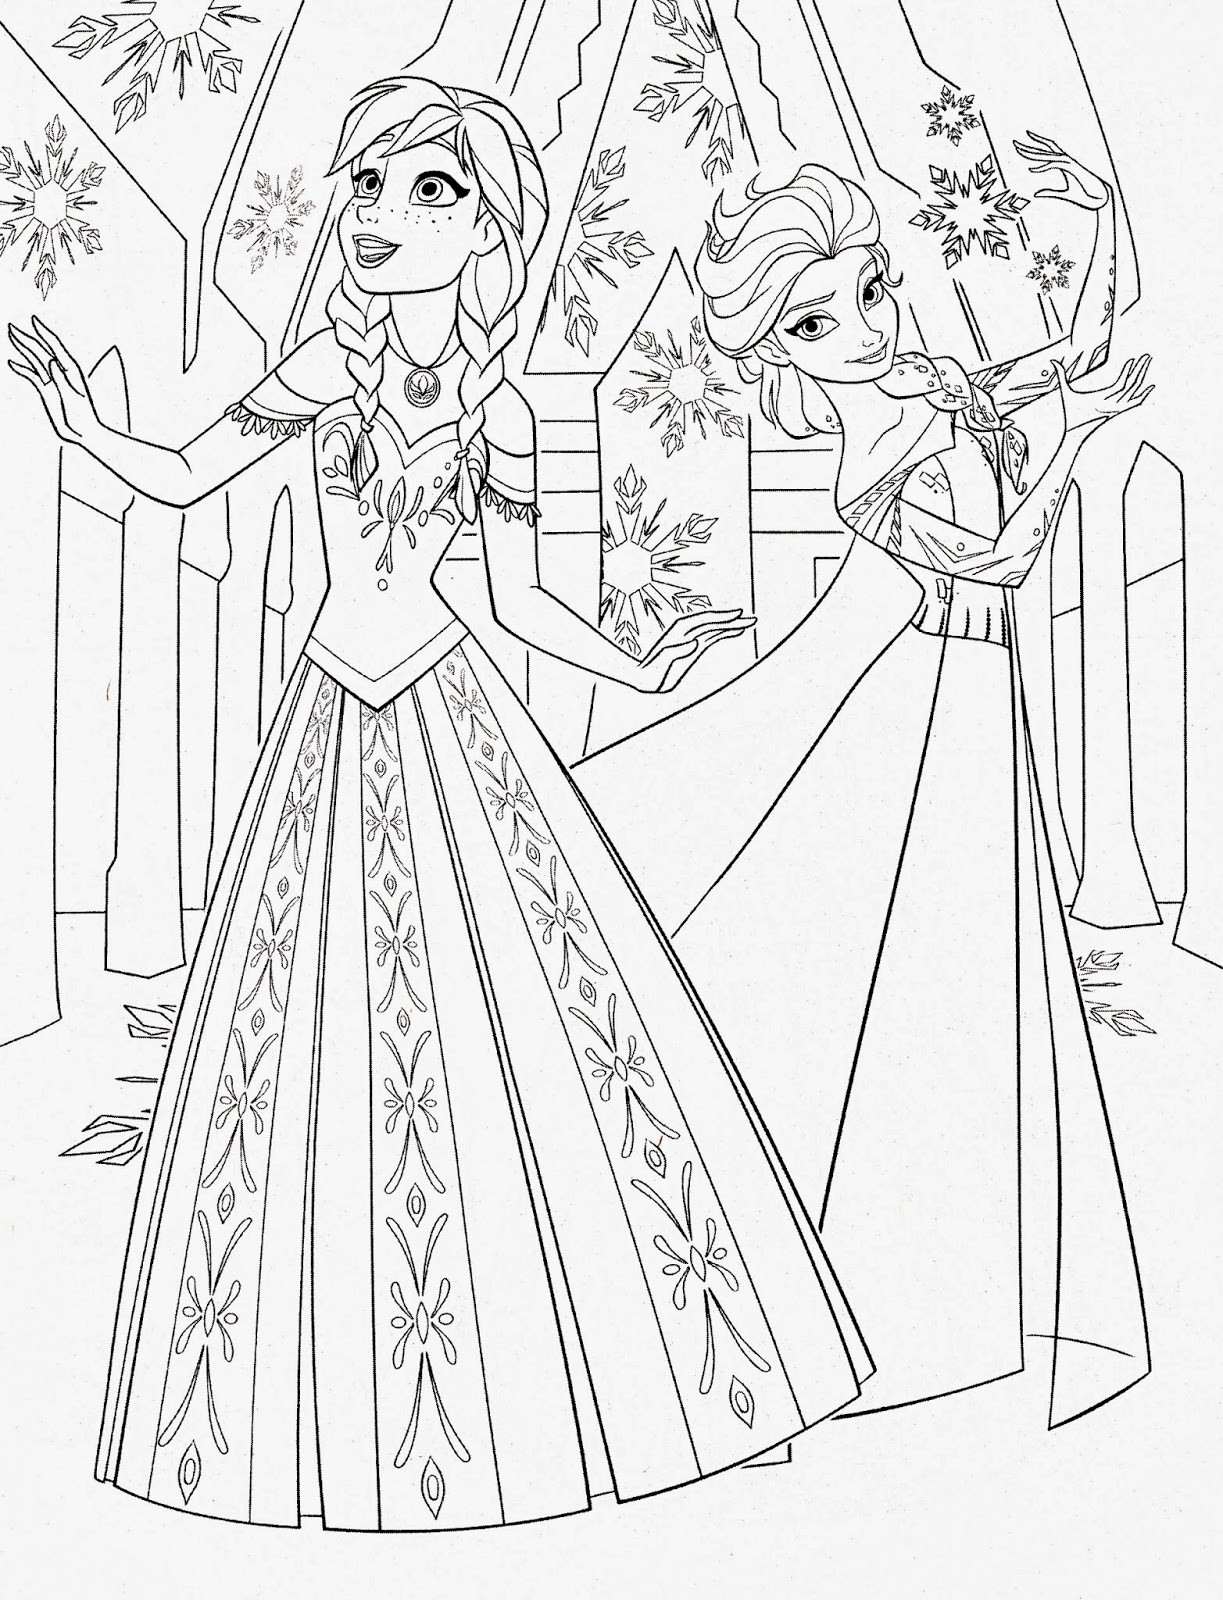 printable coloring pages frozen find 16 awesome frozen coloring pages to print instant pages frozen printable coloring